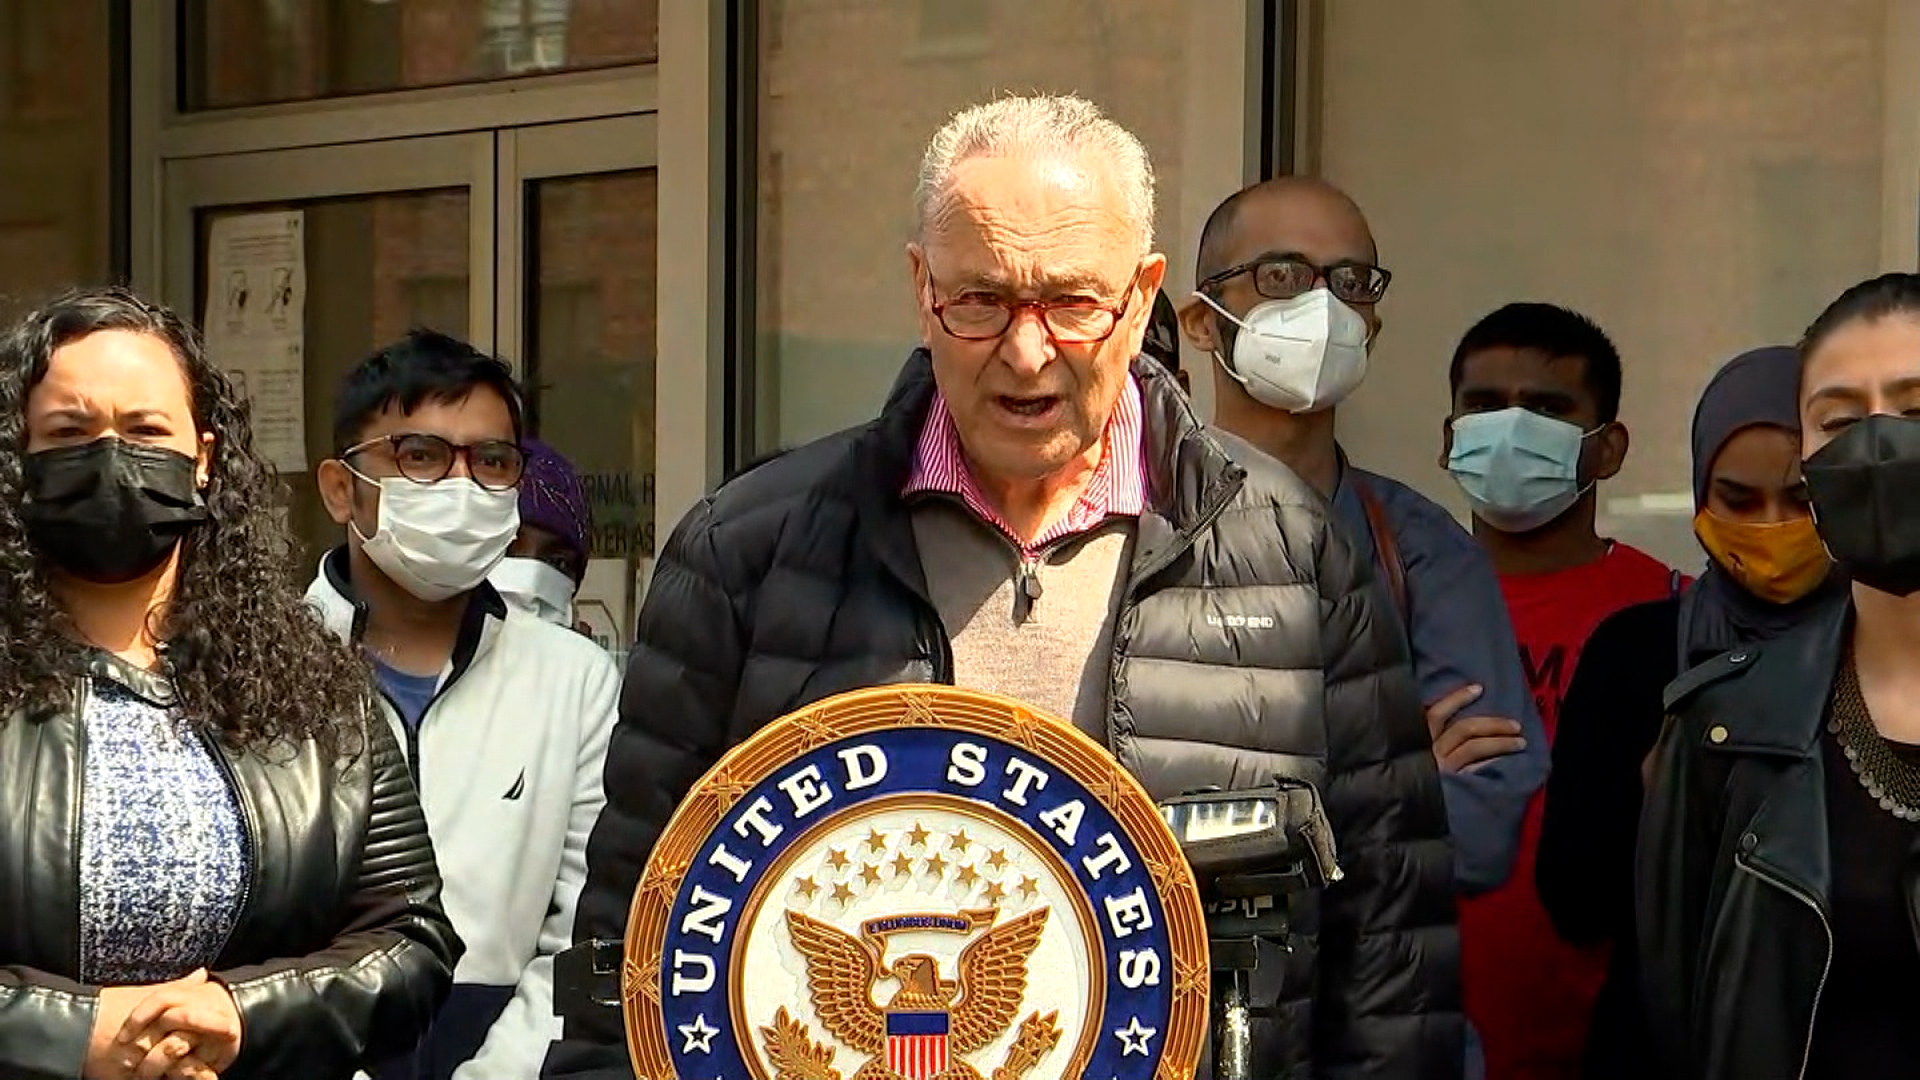 US Senate Majority Leader ChuckSchumer speaks during a press conference in New York City on April 30.